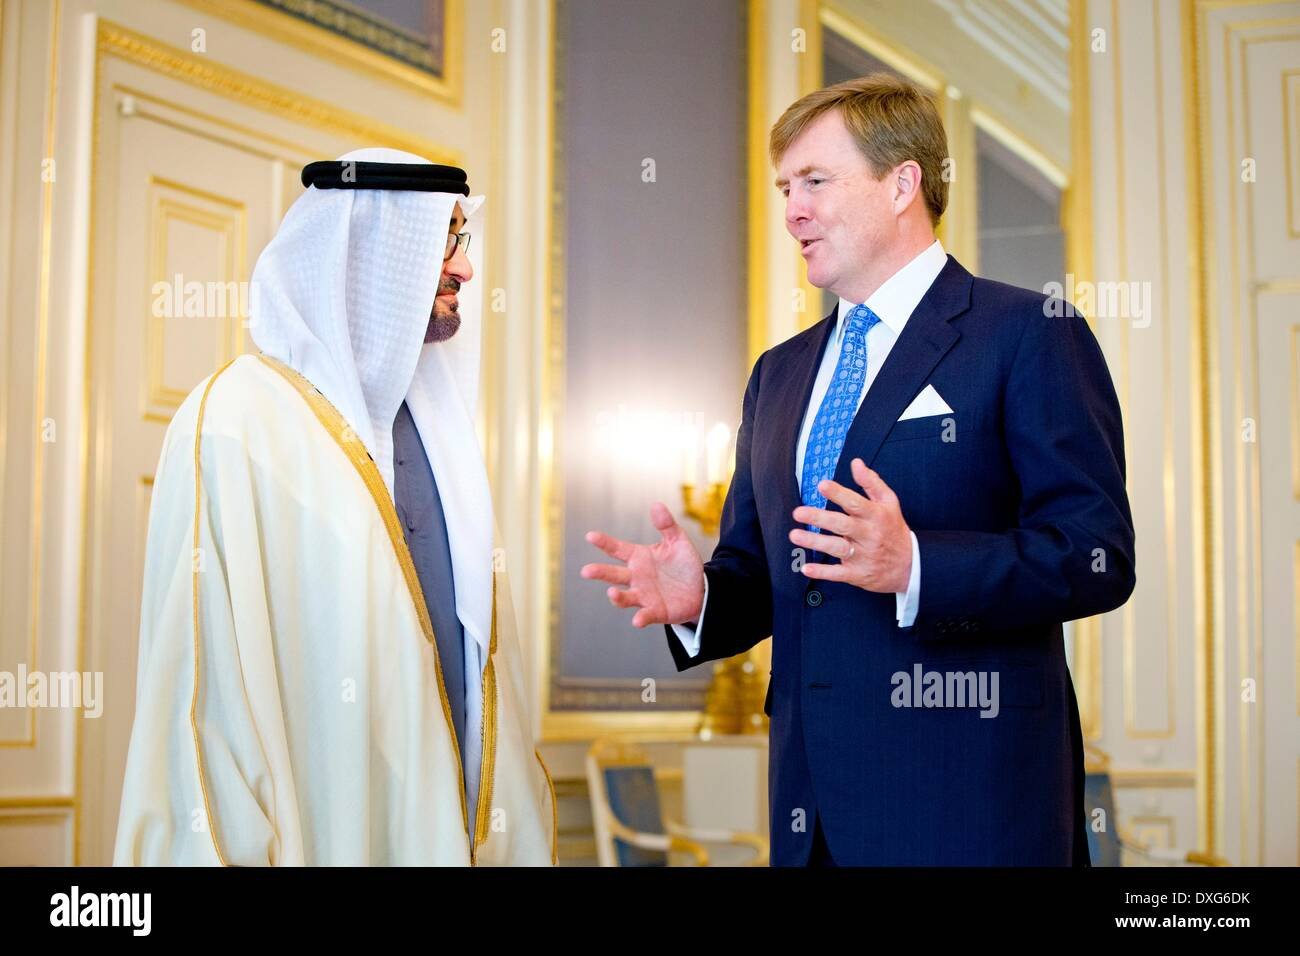 The Hague, The Netherlands. 25th Mar, 2014. Crownprince Sheikh Mohammed bin Zayed Al Nahyan of Abu Dhabi visits King Willem-Alexander during an audience at Palace Noordeinde in The Hague, The Netherlands, 25 March 2014. The Crownprince of Abu Dhabi visits the King on occasion of the Nuclear Security Summit NSS. Photo: Patrick van Katwijk - - - ATTENTION! NO WIRE SERVICE -/dpa/Alamy Live News Stock Photo